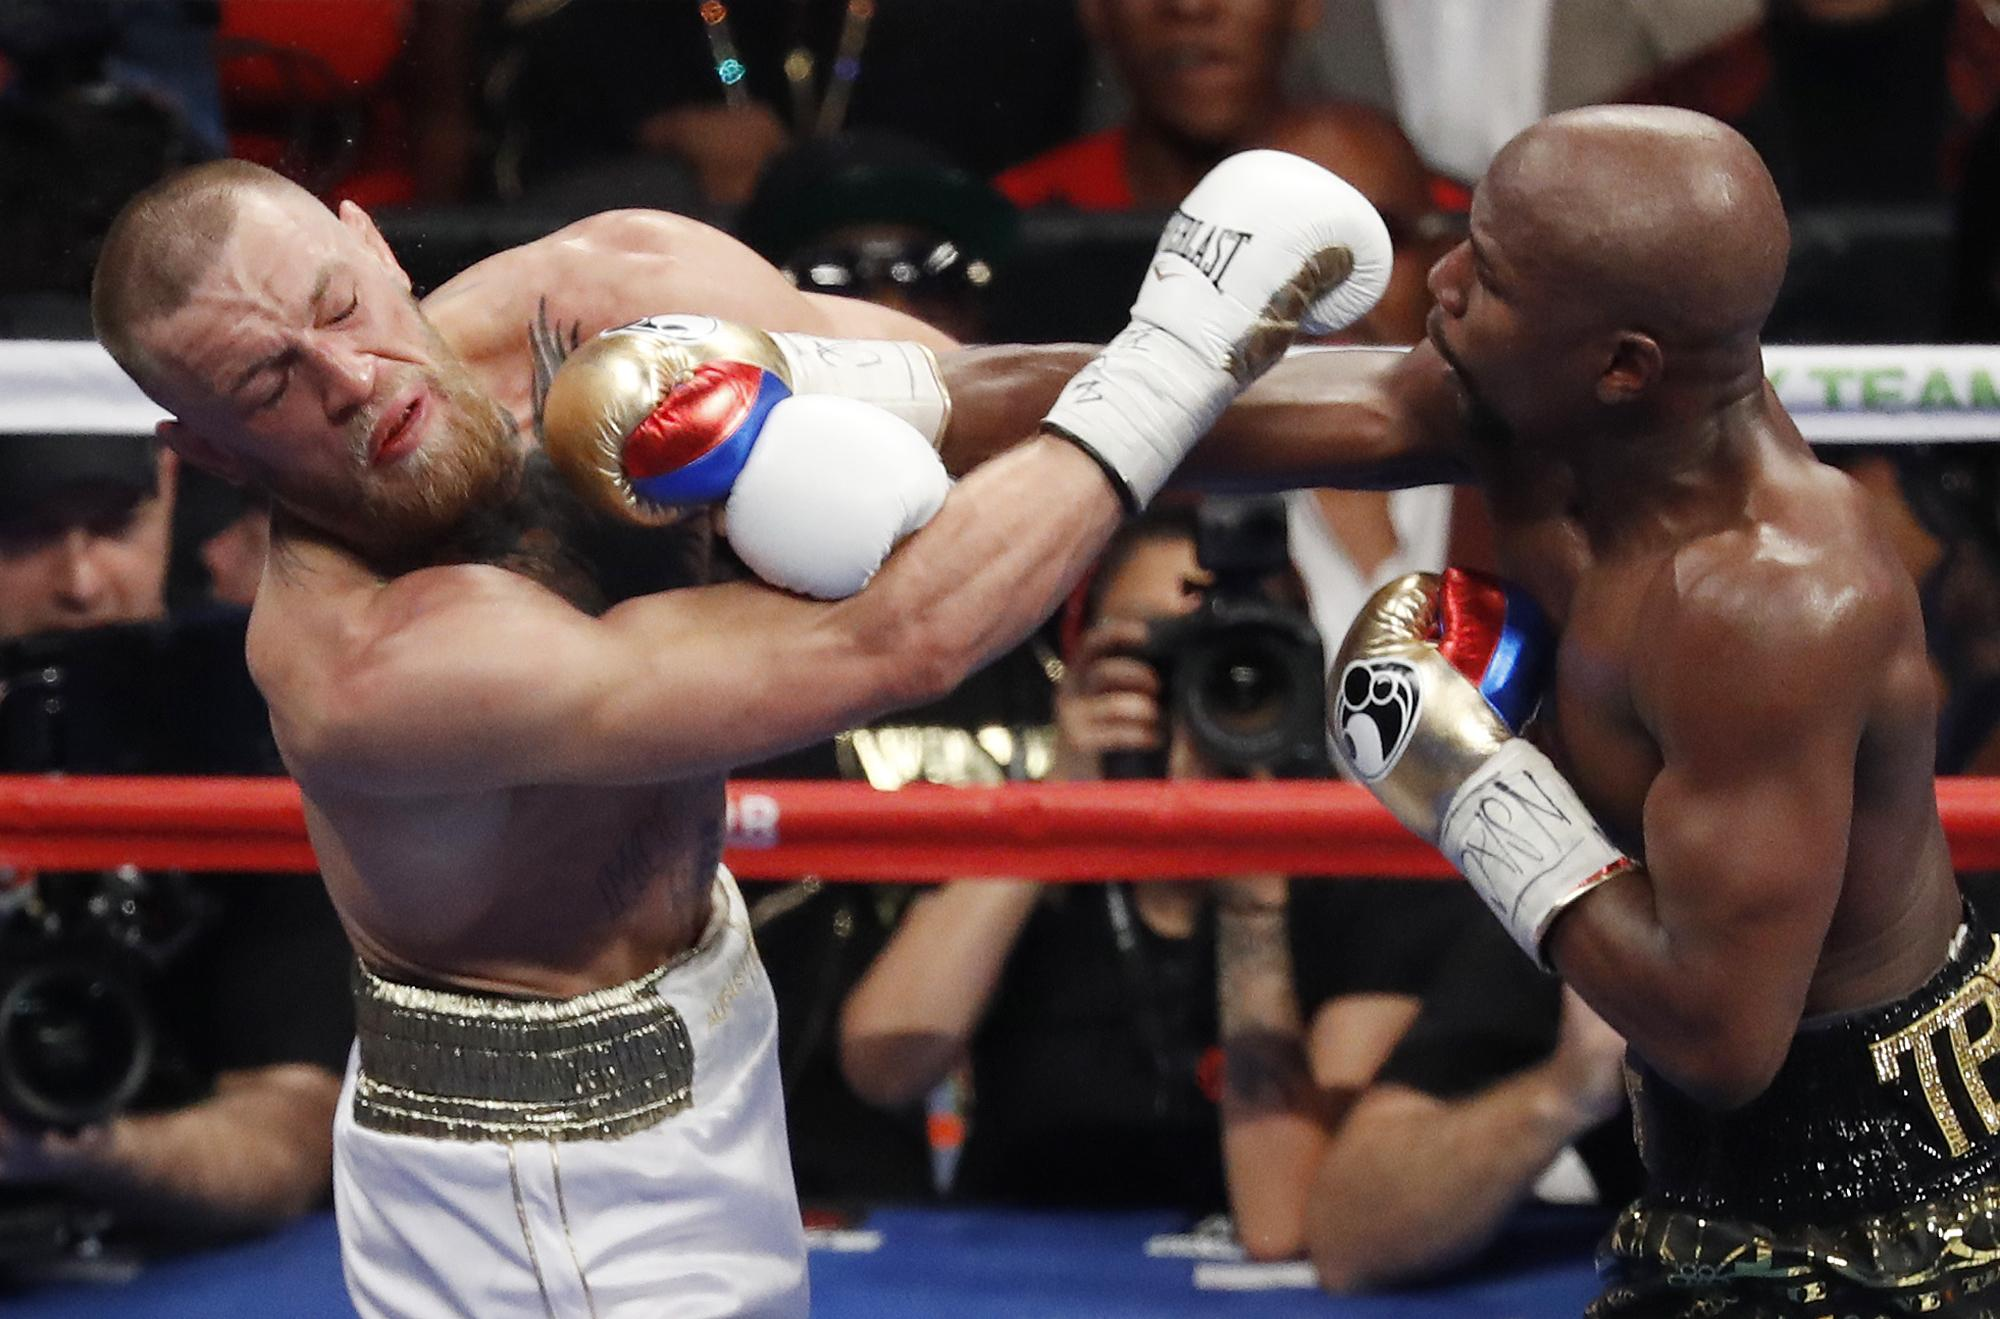 Floyd Mayweather unsurprisingly defeated Conor McGregor in a boxing ring in August last year